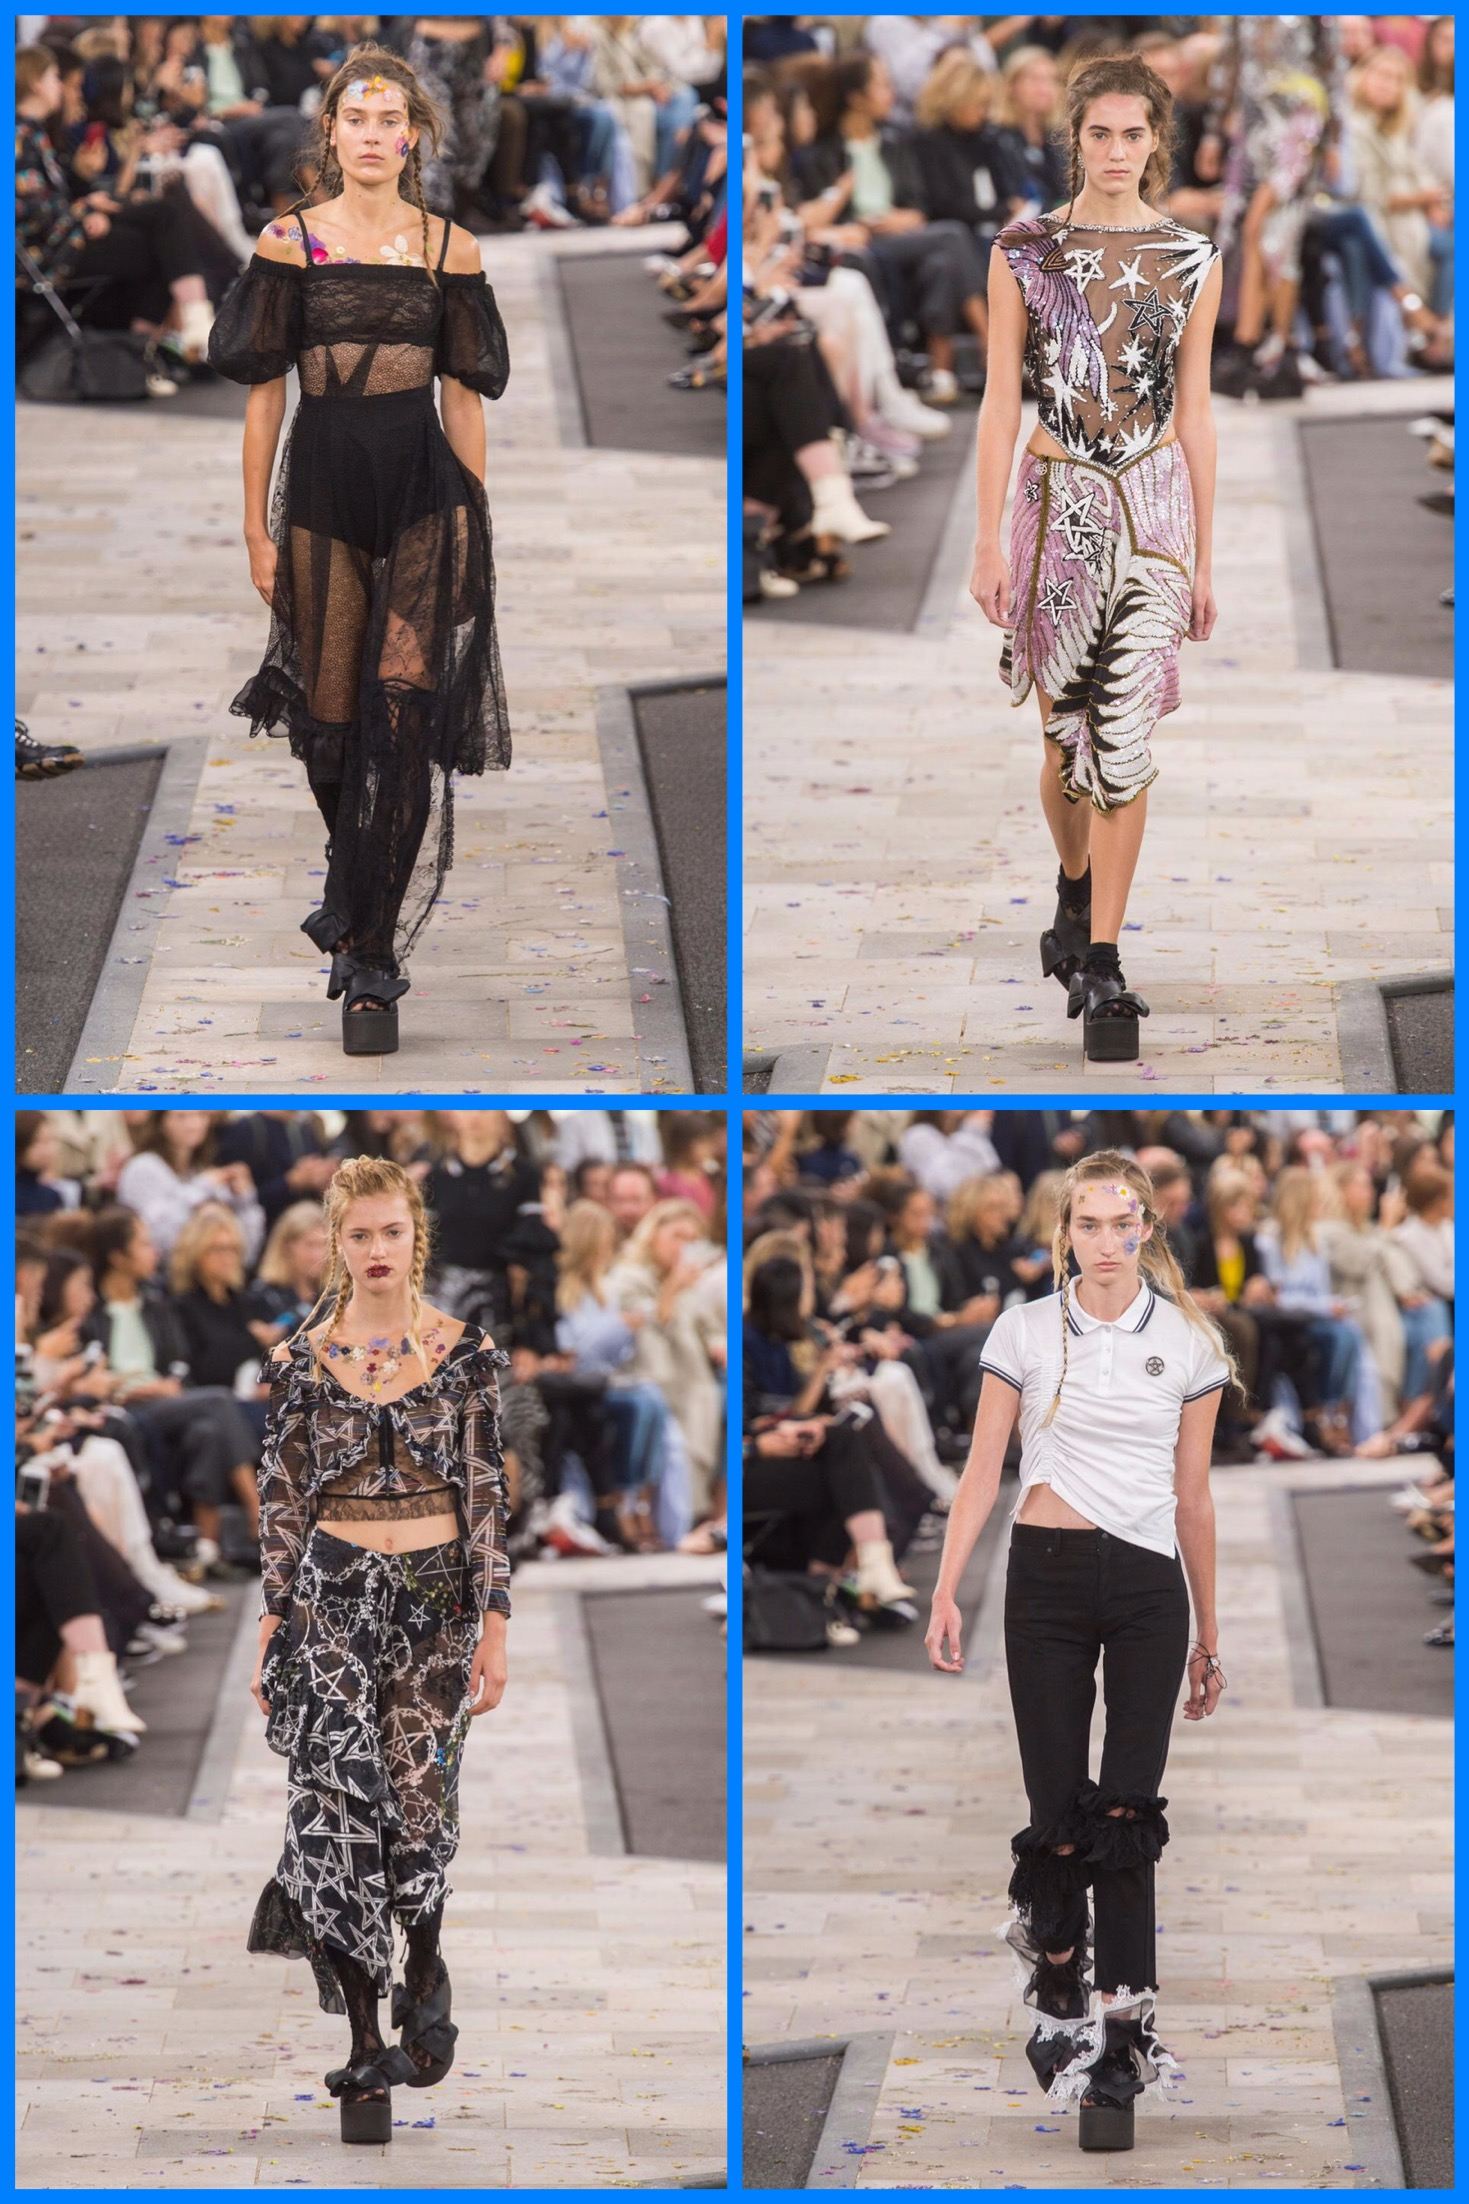 london-fashion-week-pret-a-porter-spring-summer-2017-style-preen-by-thornton-bregazzi